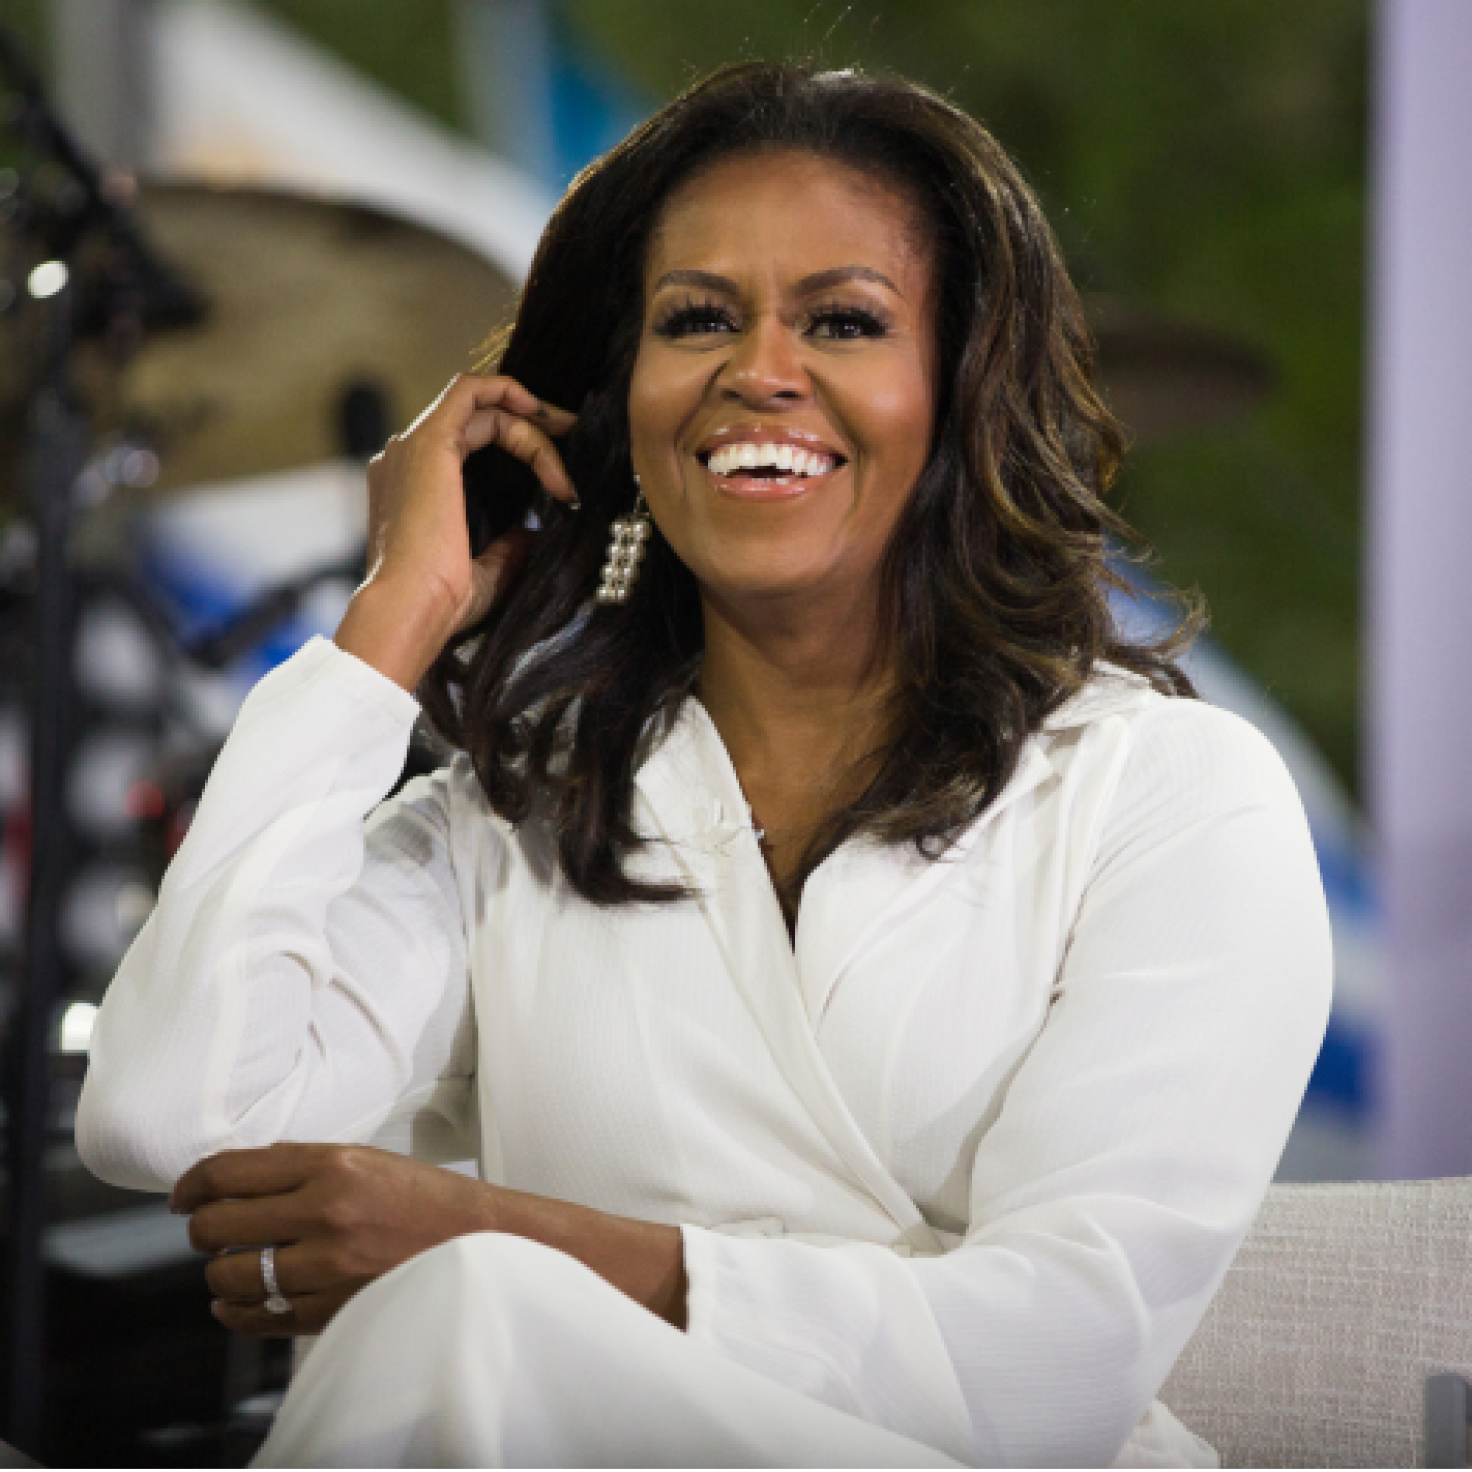 15 Beauty Shots Of Michelle Obama That Remind Us Why She's The Baddest FLOTUS